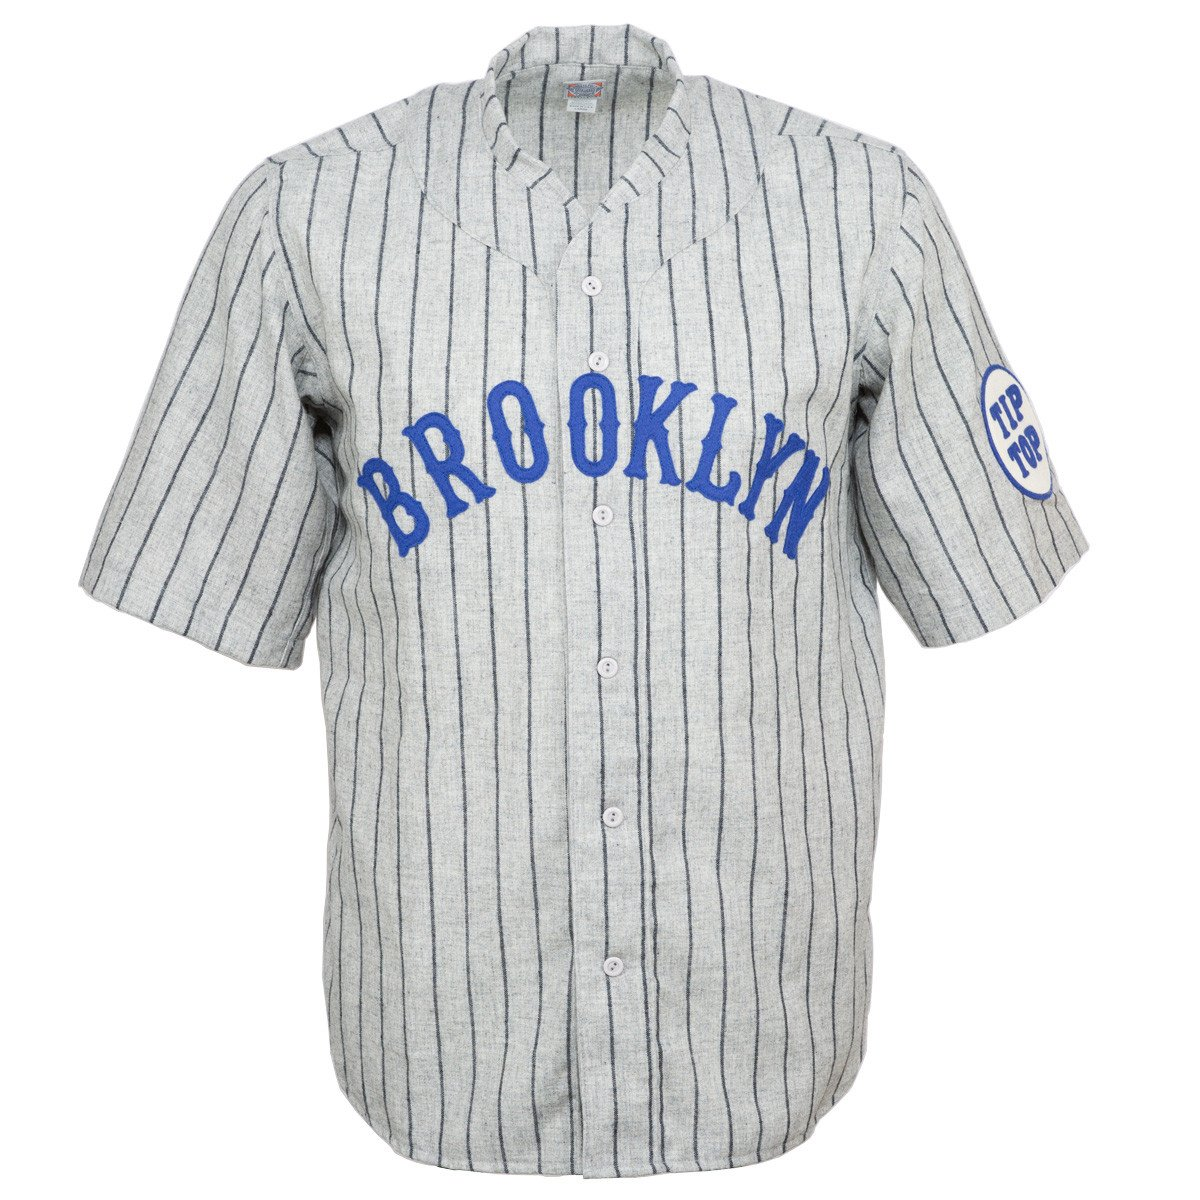 Brooklyn-Tip-Tops-Road-1915-Road-Jersey-FRONT.jpg